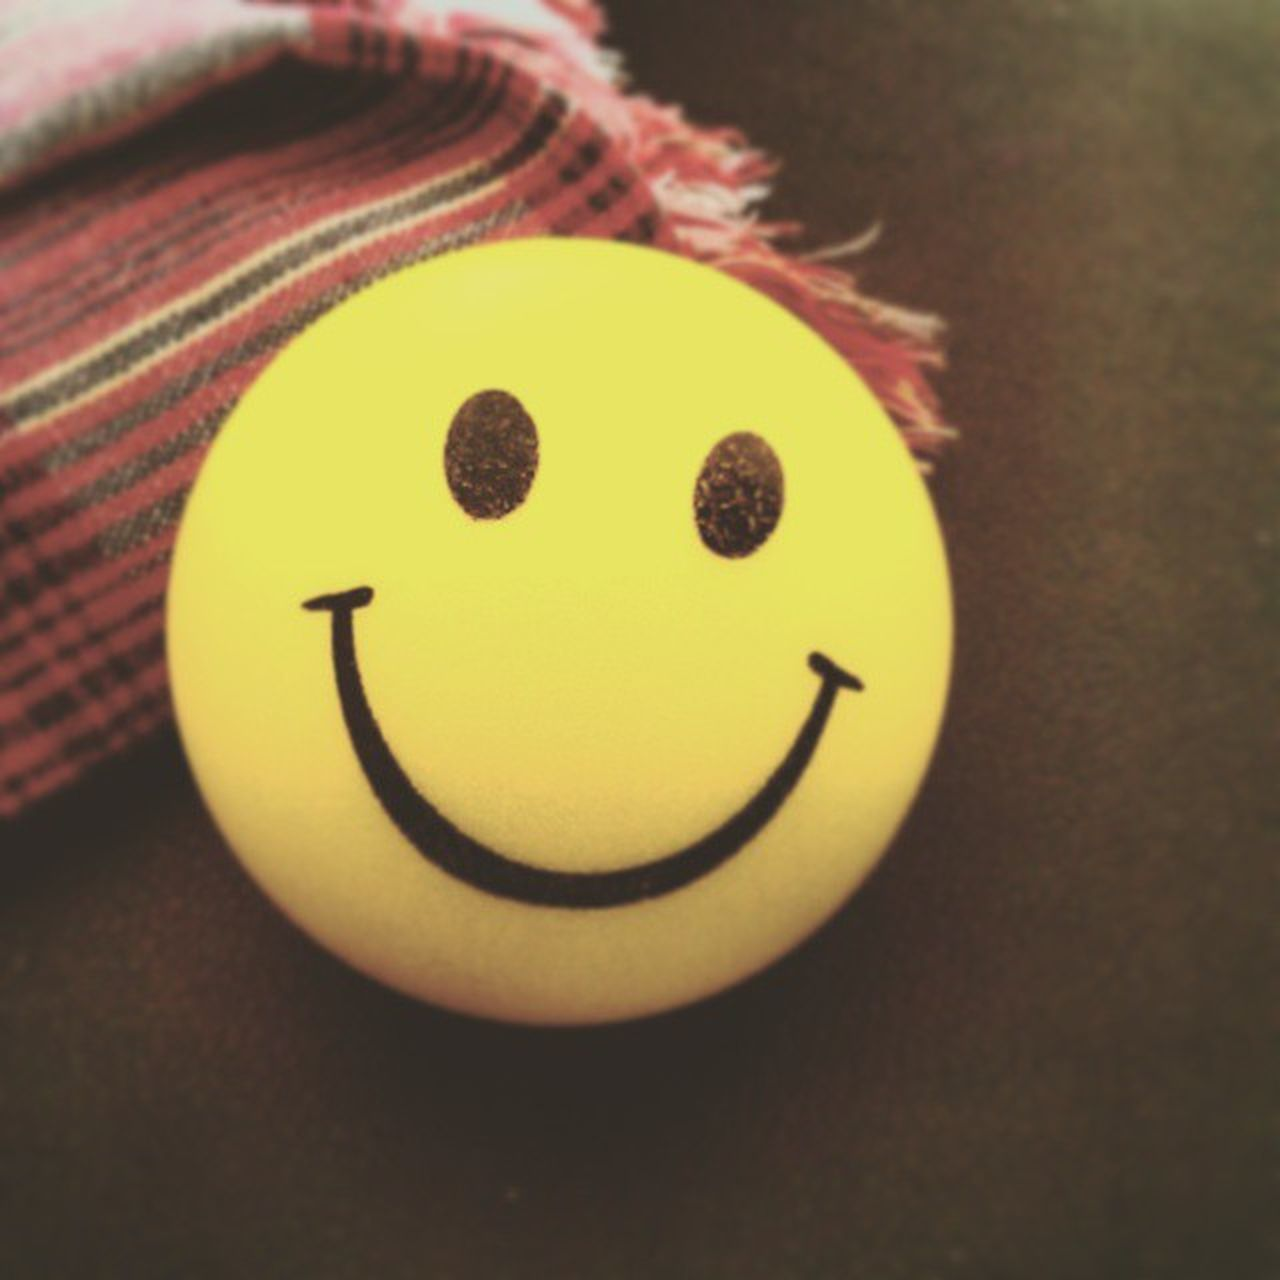 indoors, anthropomorphic smiley face, anthropomorphic face, close-up, no people, happiness, smiling, day